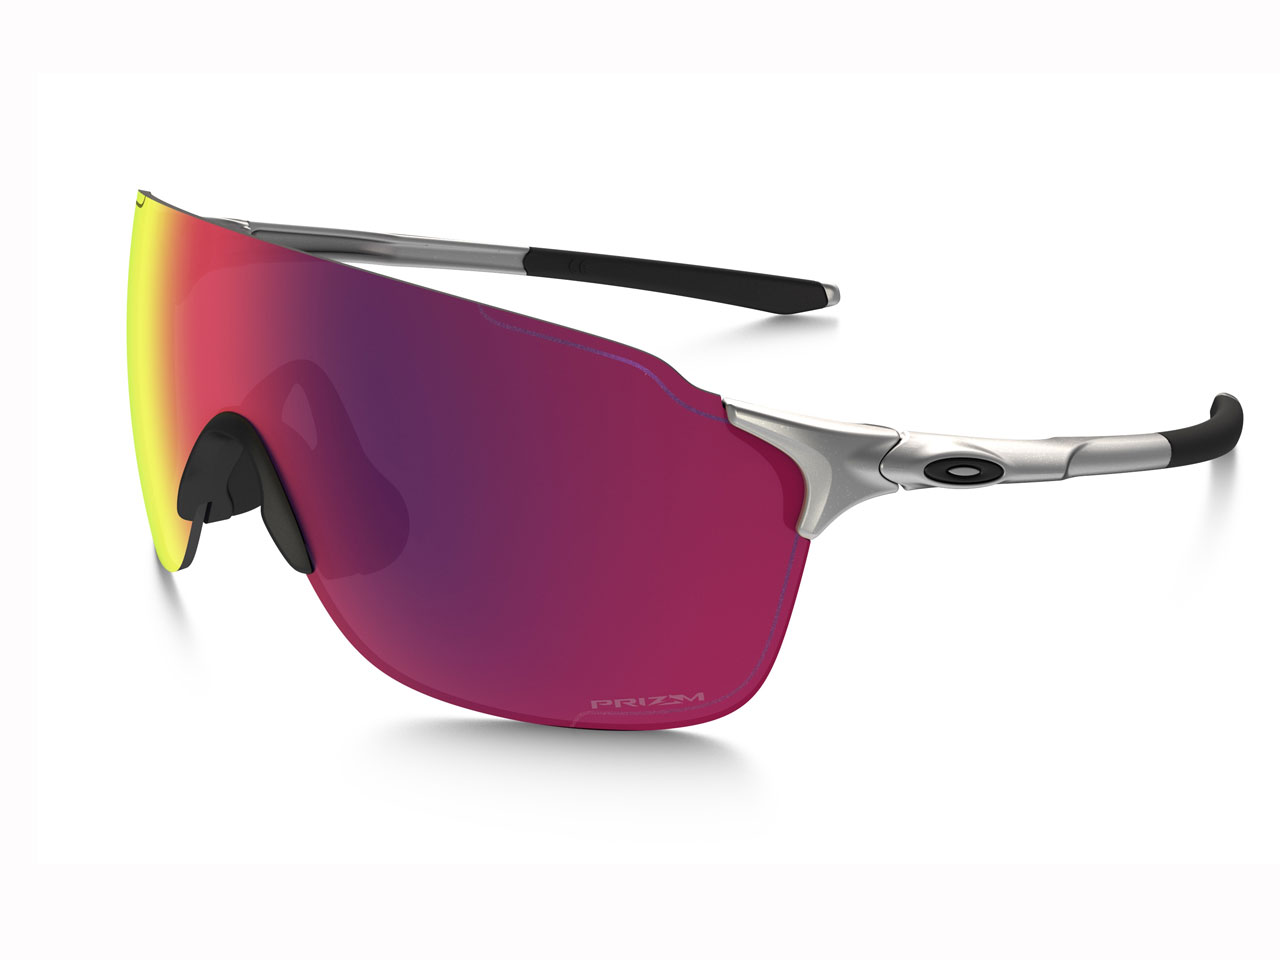 Sunglasses For Every 2017 Performance 10 Best AthleteSpring QdrCoeBWx